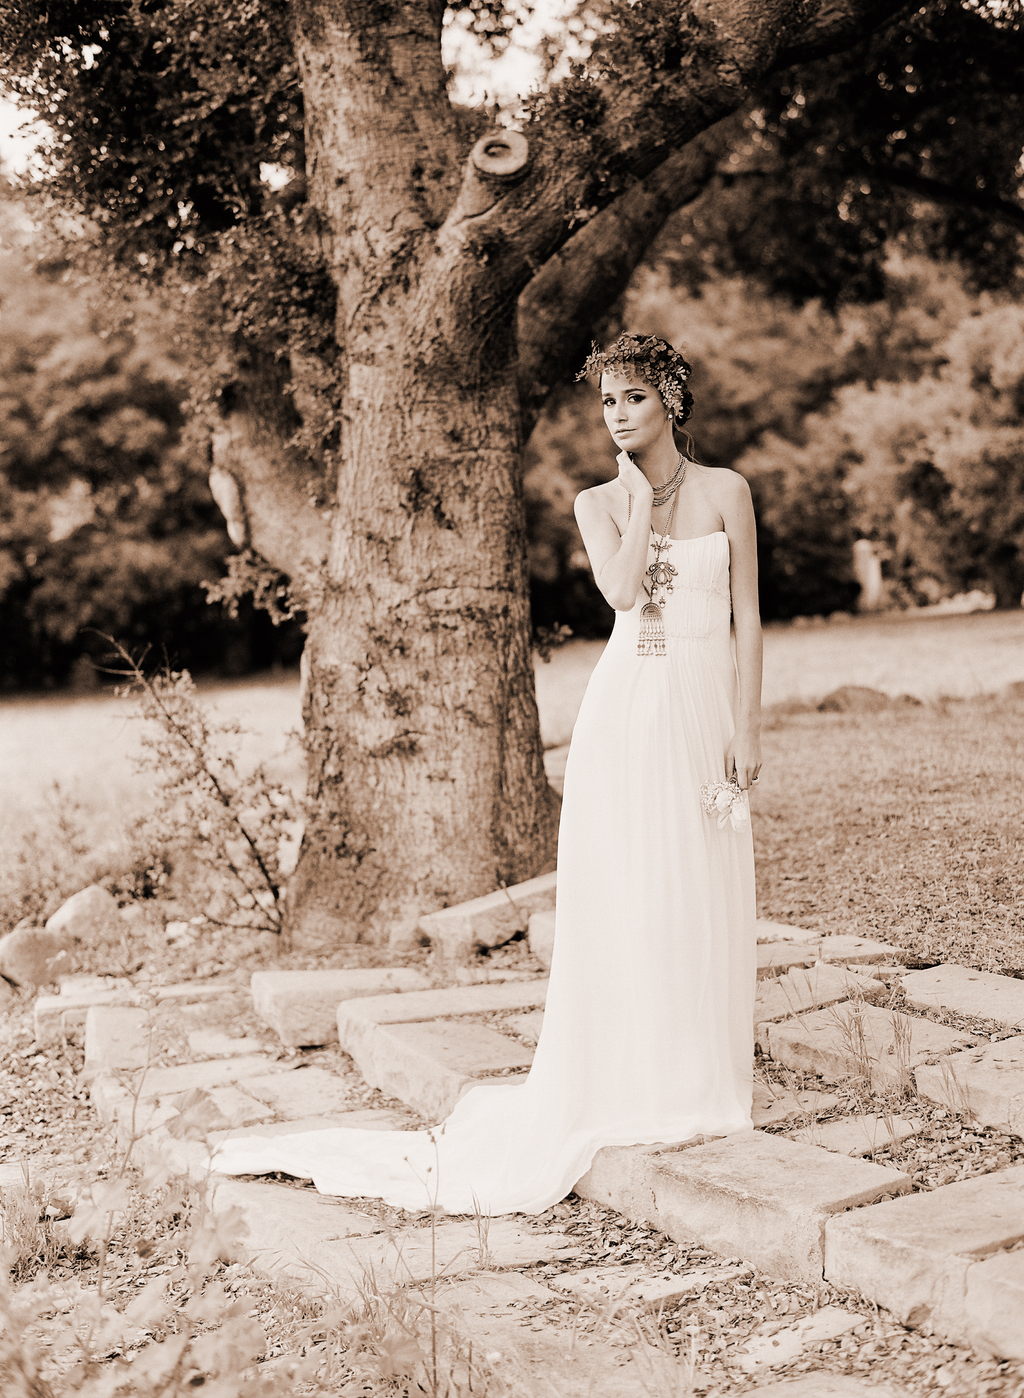 Styled-wedding-santa-barbara-chic-beaux-arts-phtographie-italian-bohemian-wedding-bride-wedding-dress--sepia-116.full